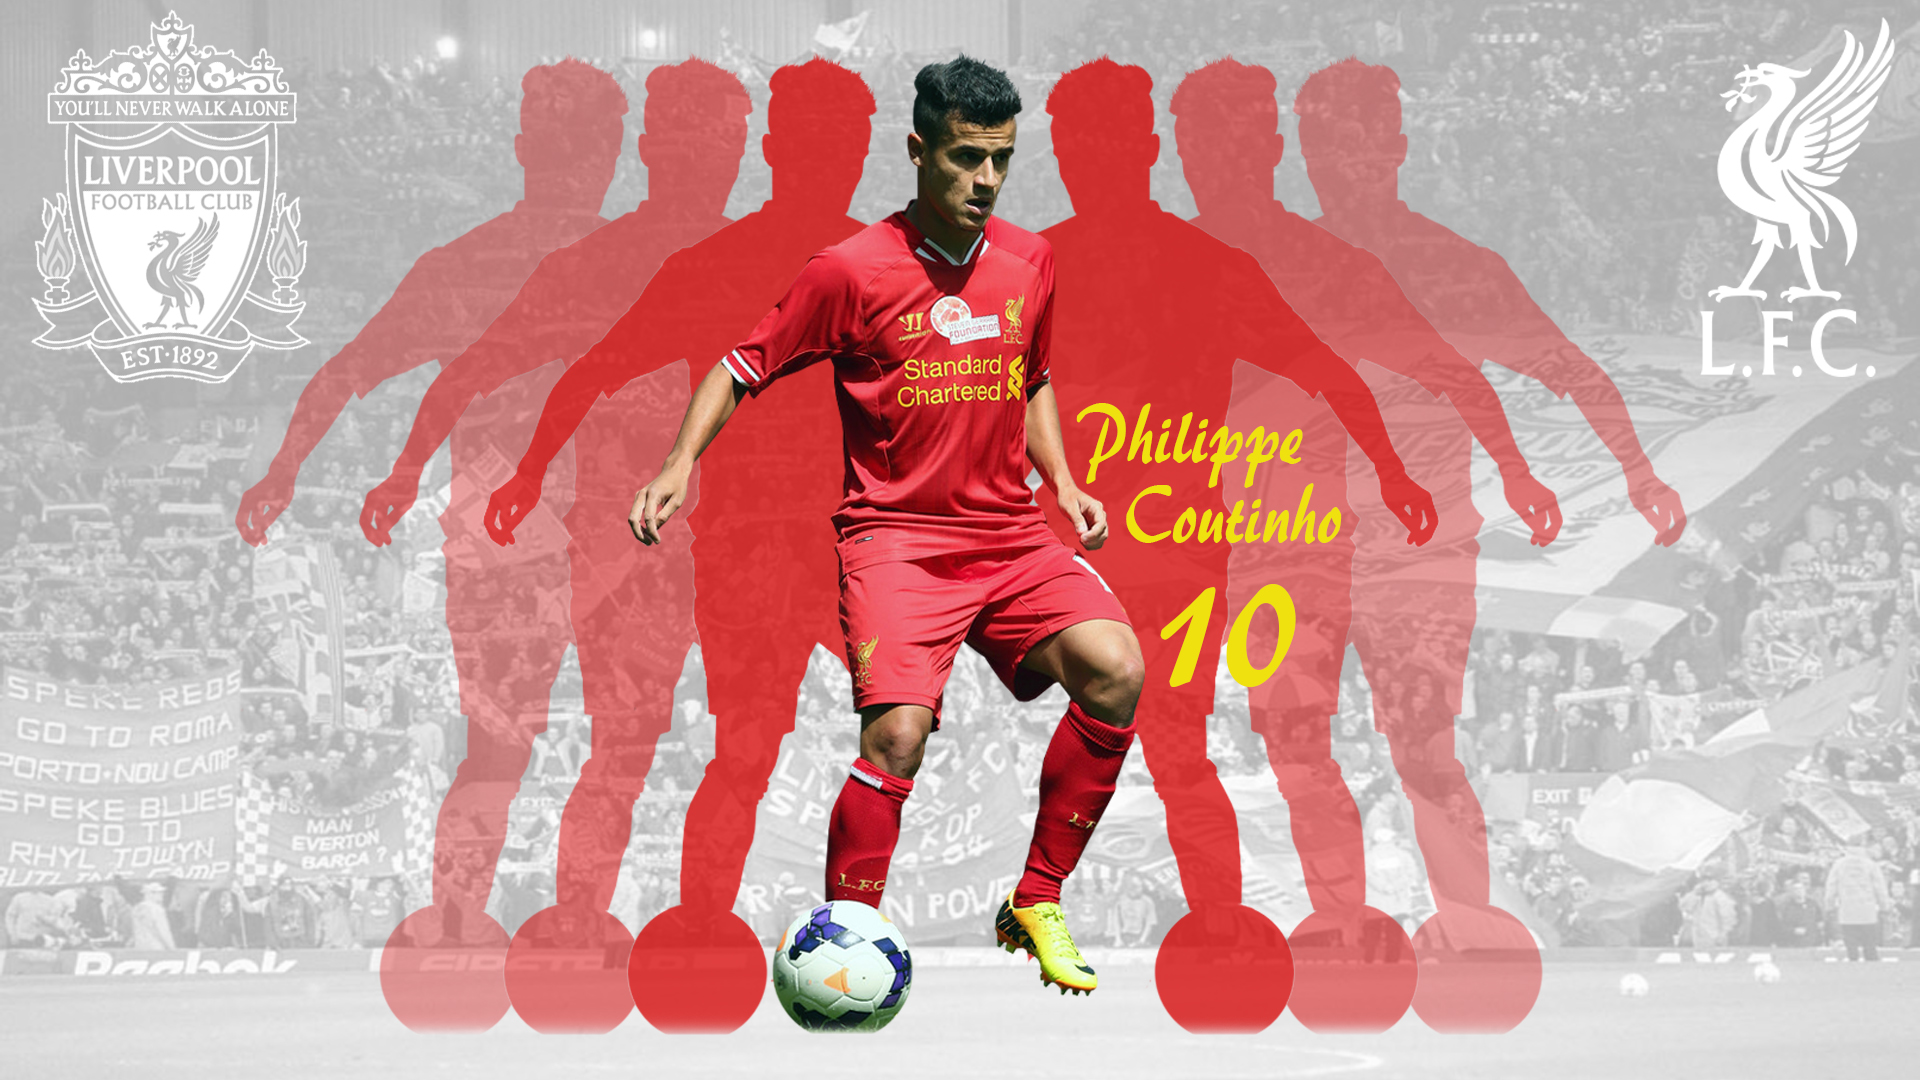 Philippe Coutinho Wallpaper Liverpool